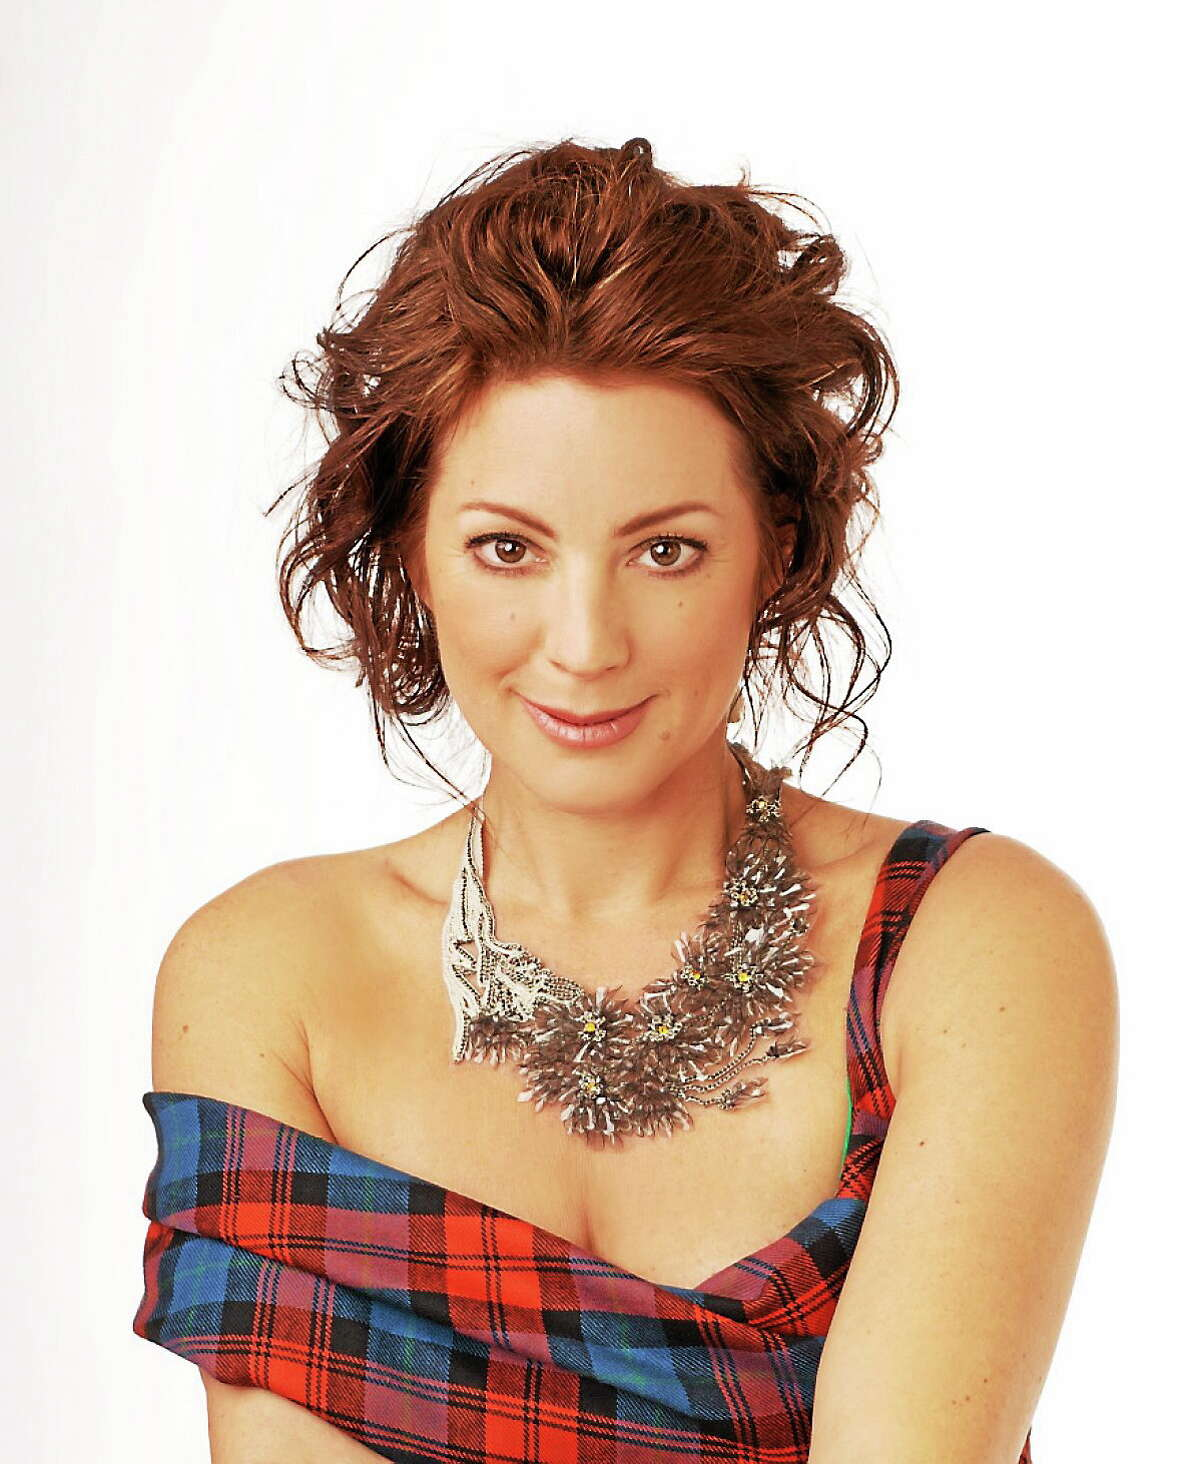 Submitted photo - Sarah McLachlan Multi-platinum singer and songwriter Sarah McLachlan is set to perform at the Mohegan Sun Arena on this Sunday night, July 20.